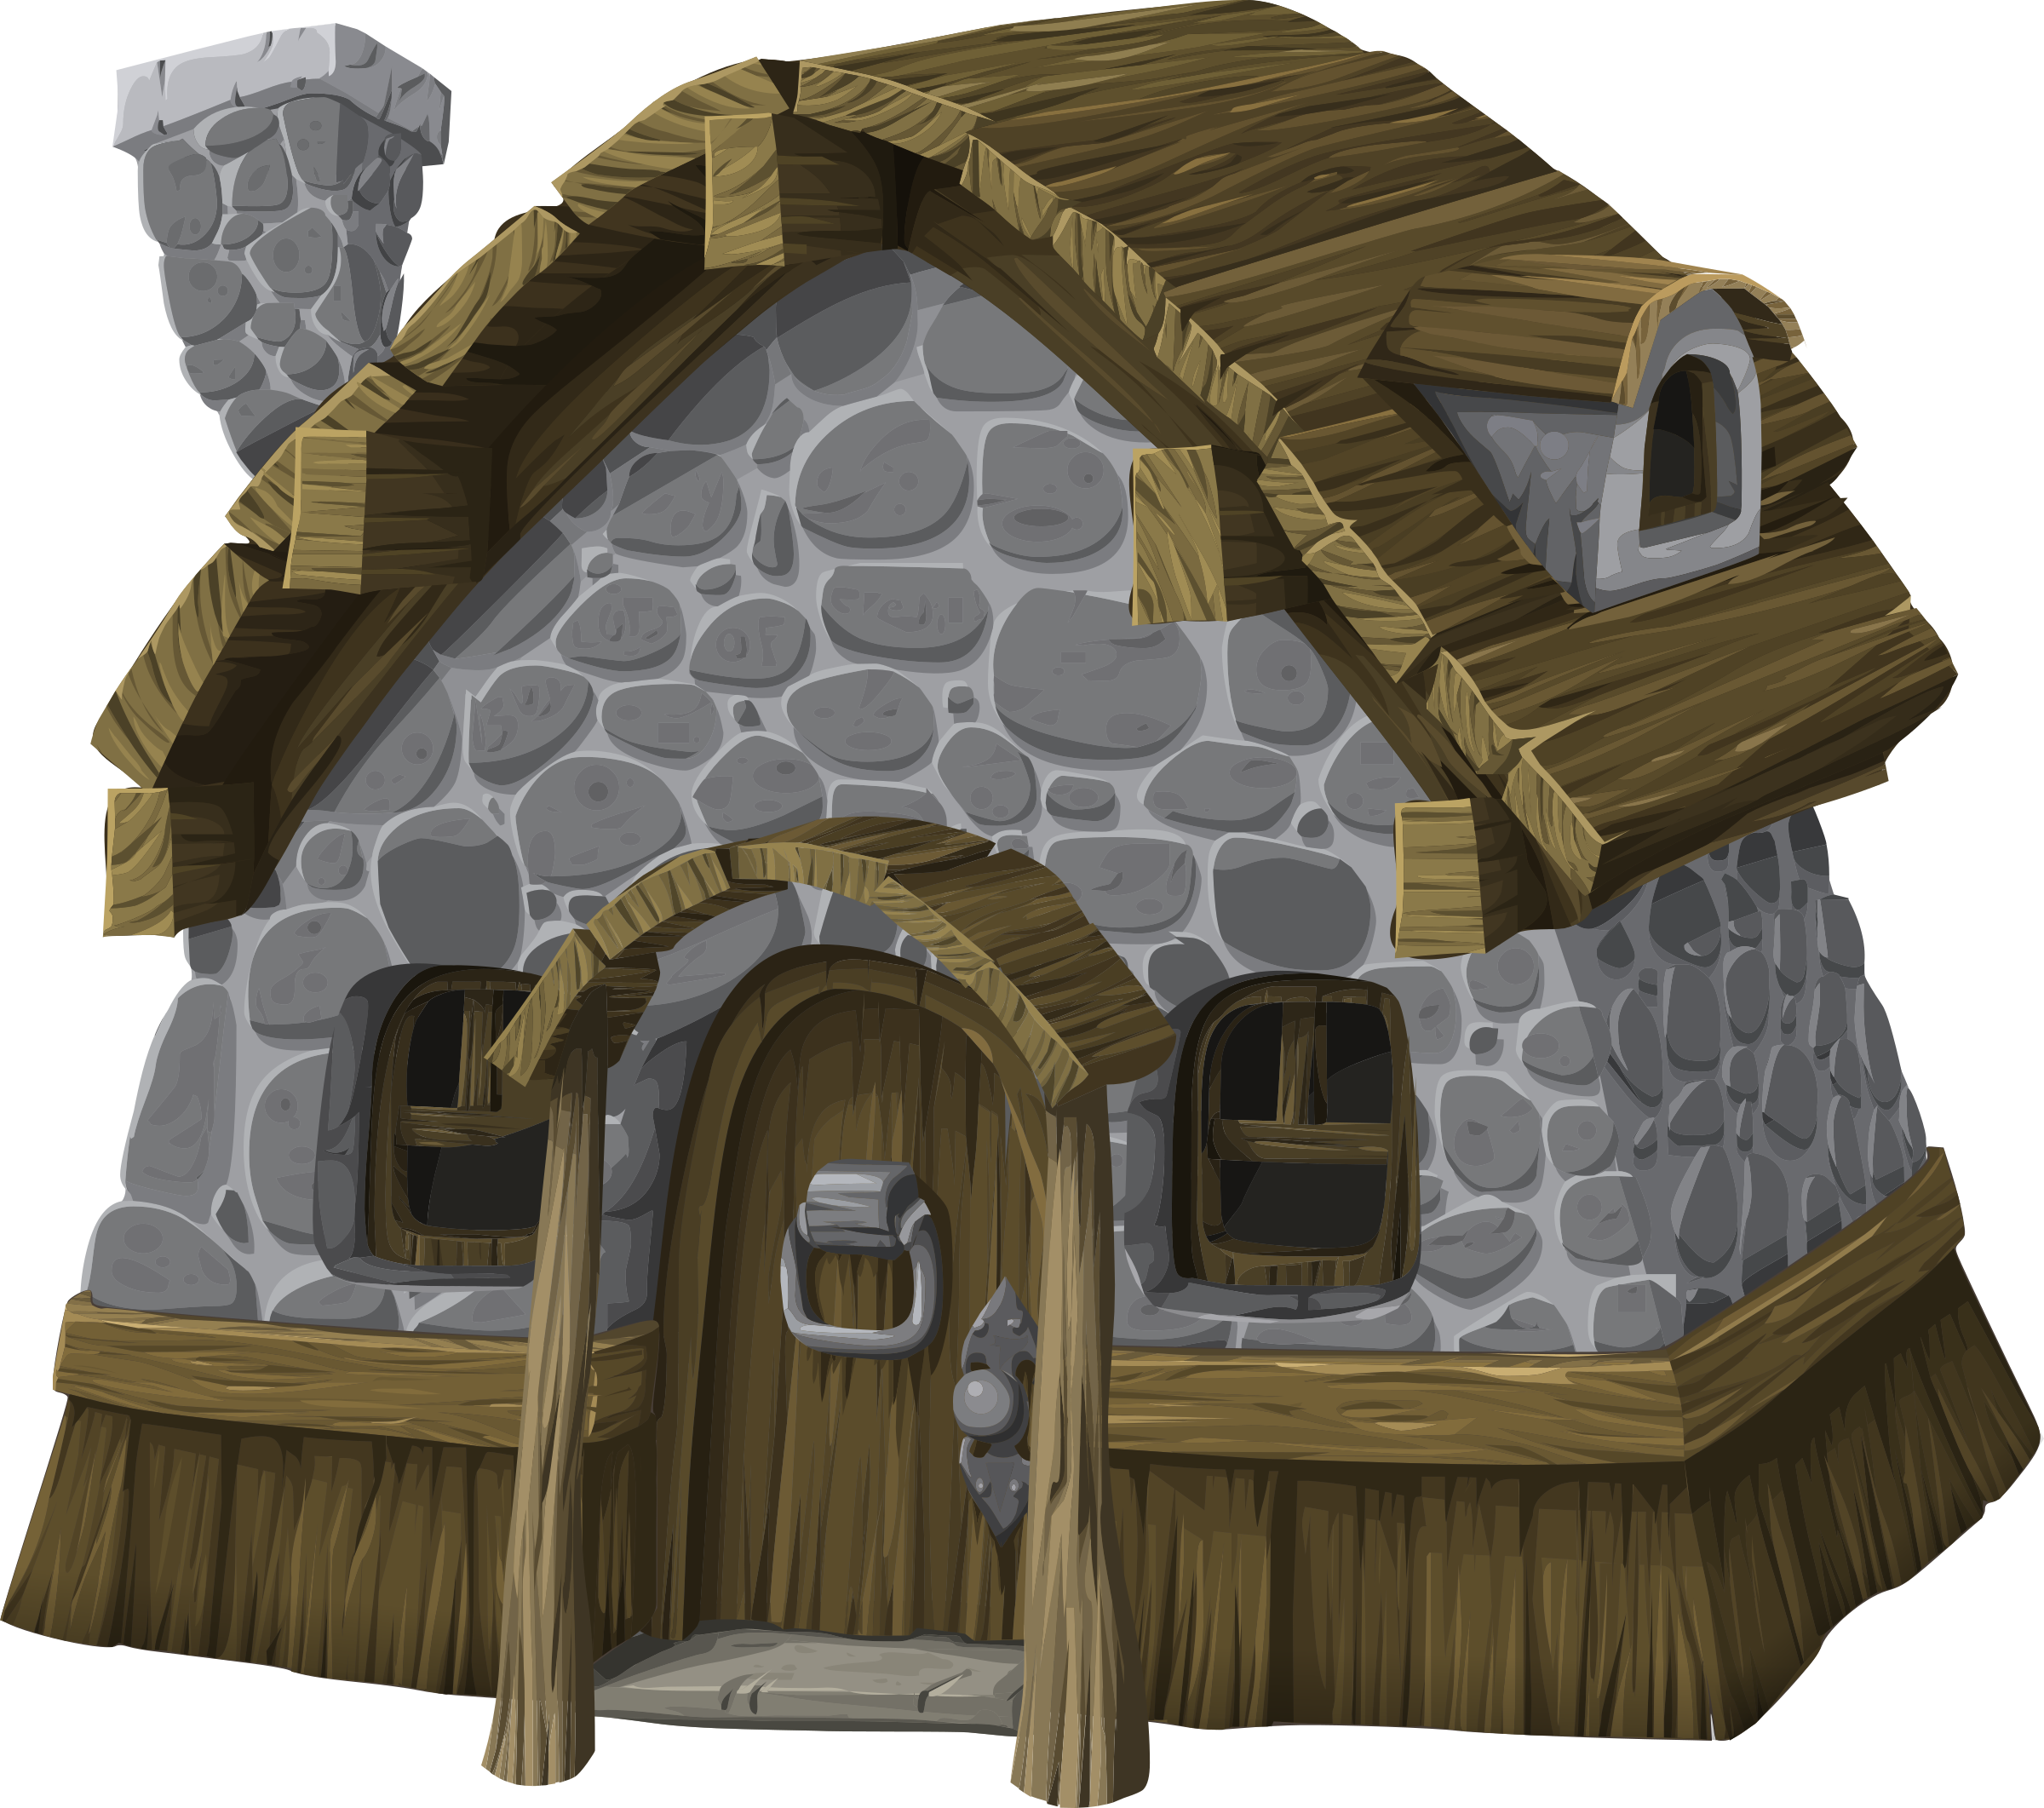 Rustic from glitch big. Cottage clipart old fashioned house